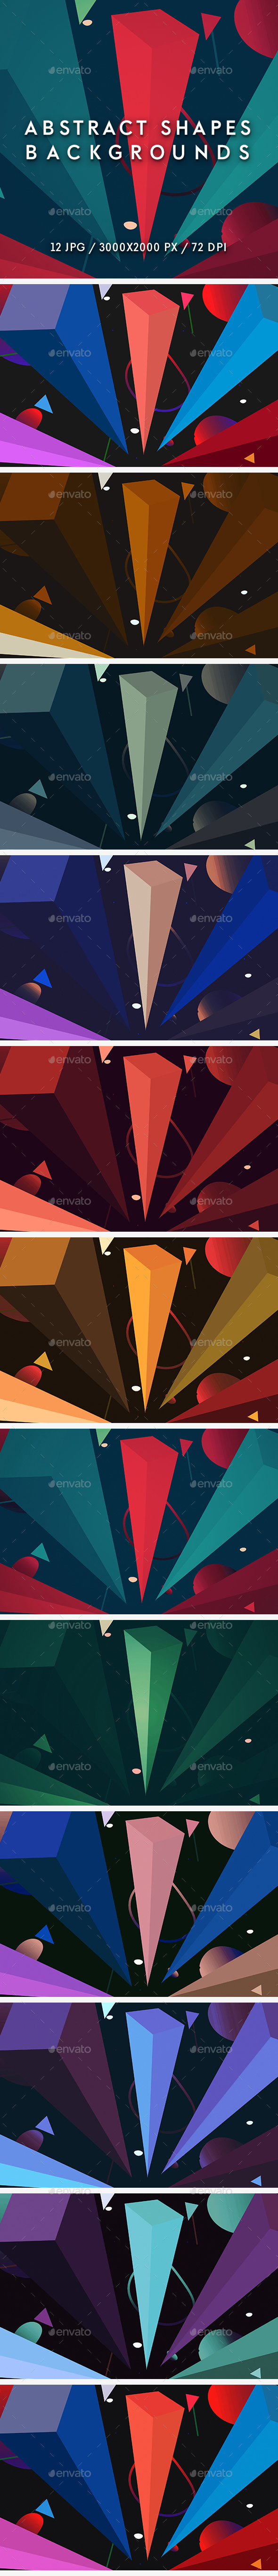 Abstract Shapes Backgrounds - Abstract Backgrounds